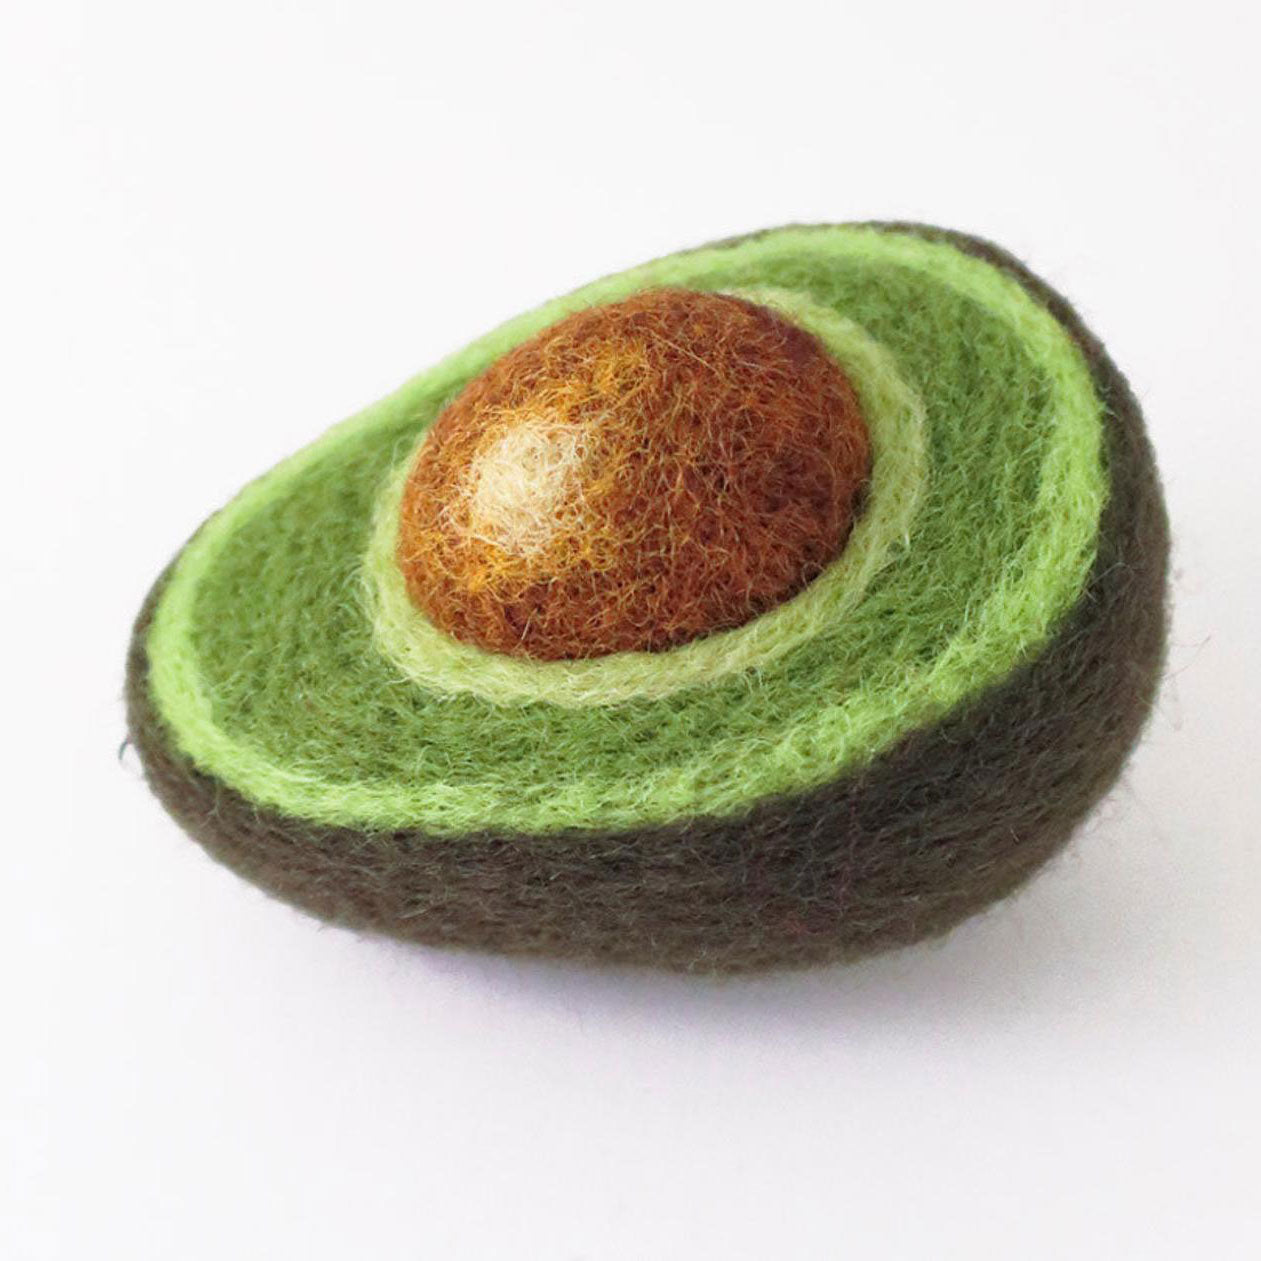 Felted Avocado from Fuzz-E-Food